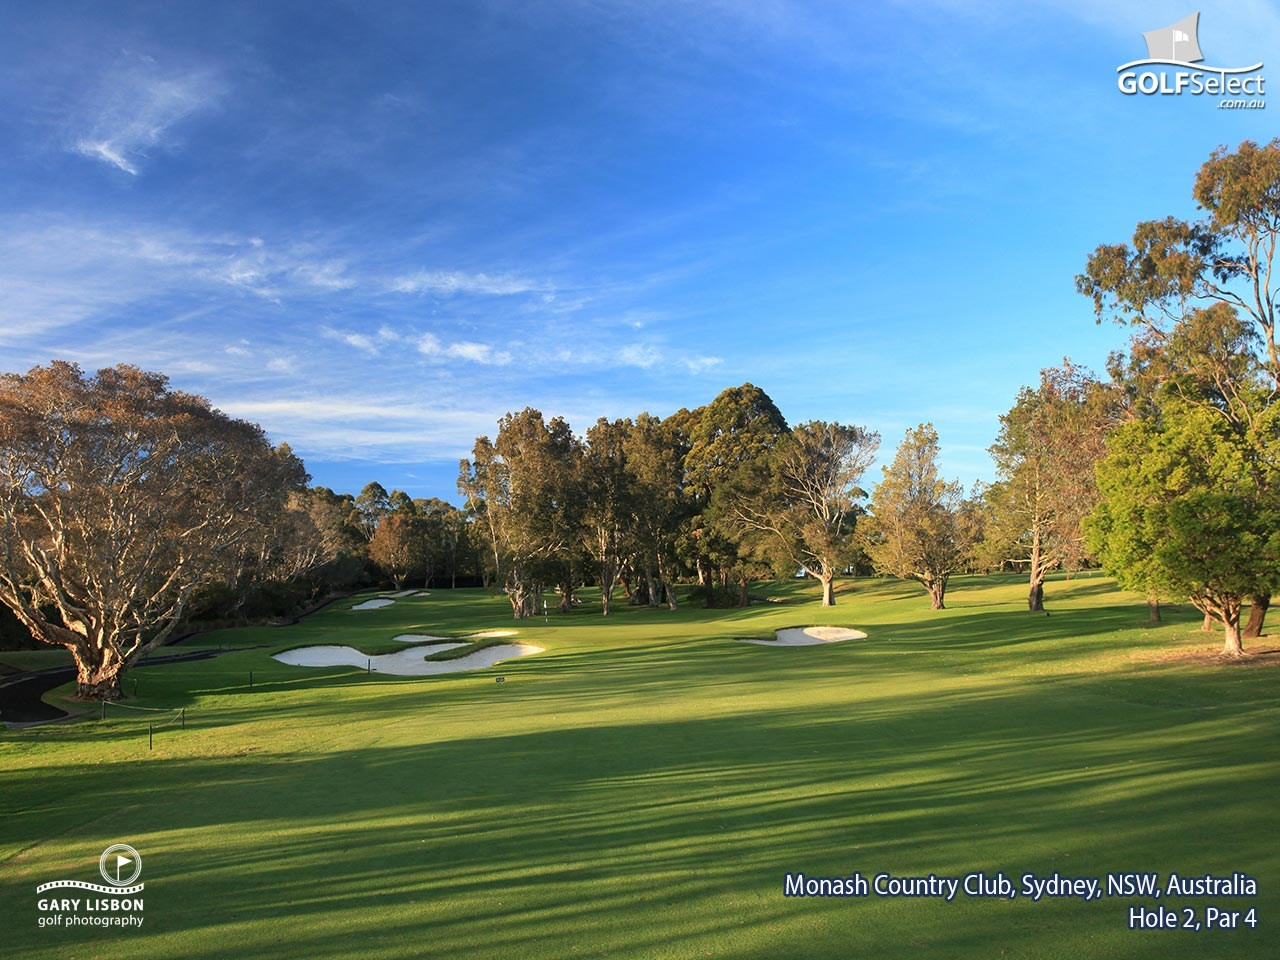 Monash Country Club Hole 2, Par 4